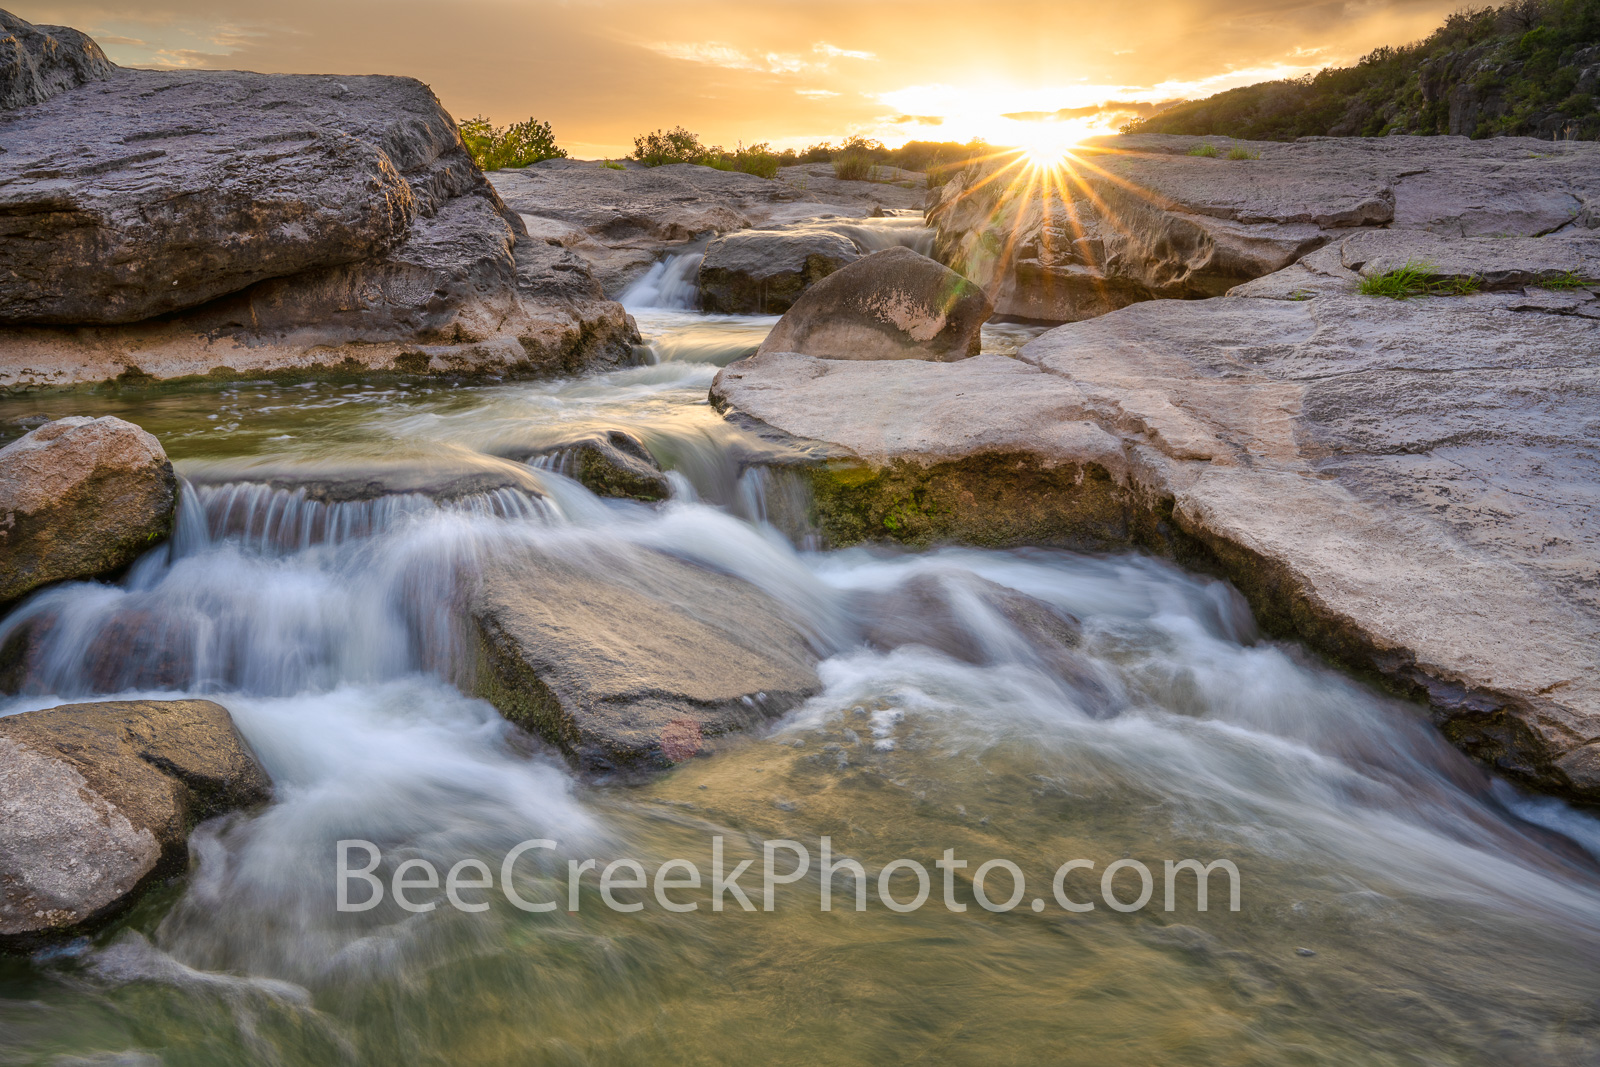 Texas Hill country, Pedernales Falls State Park, pednernales river, waterfall,